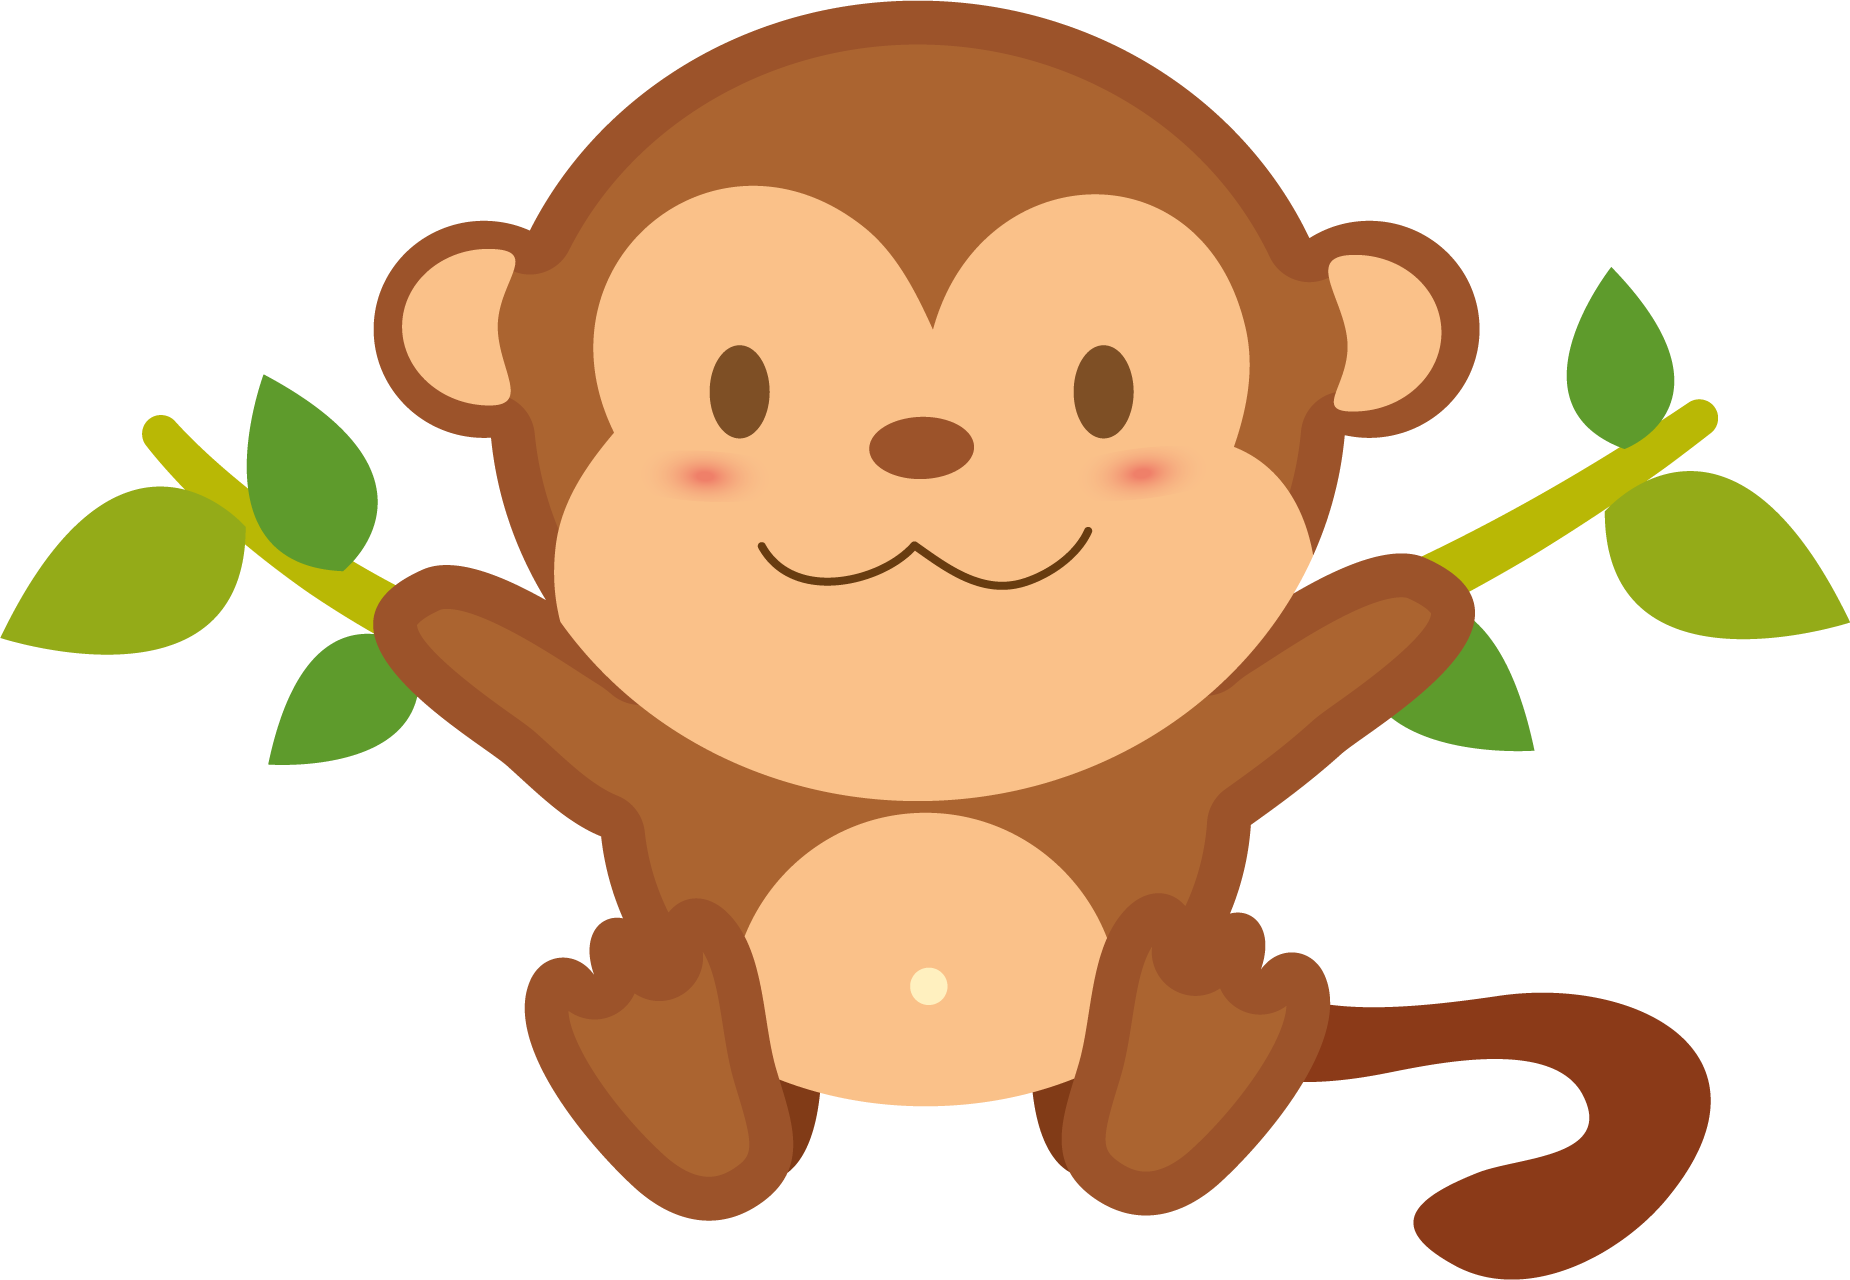 Monkey clipart number. Png transparent free images